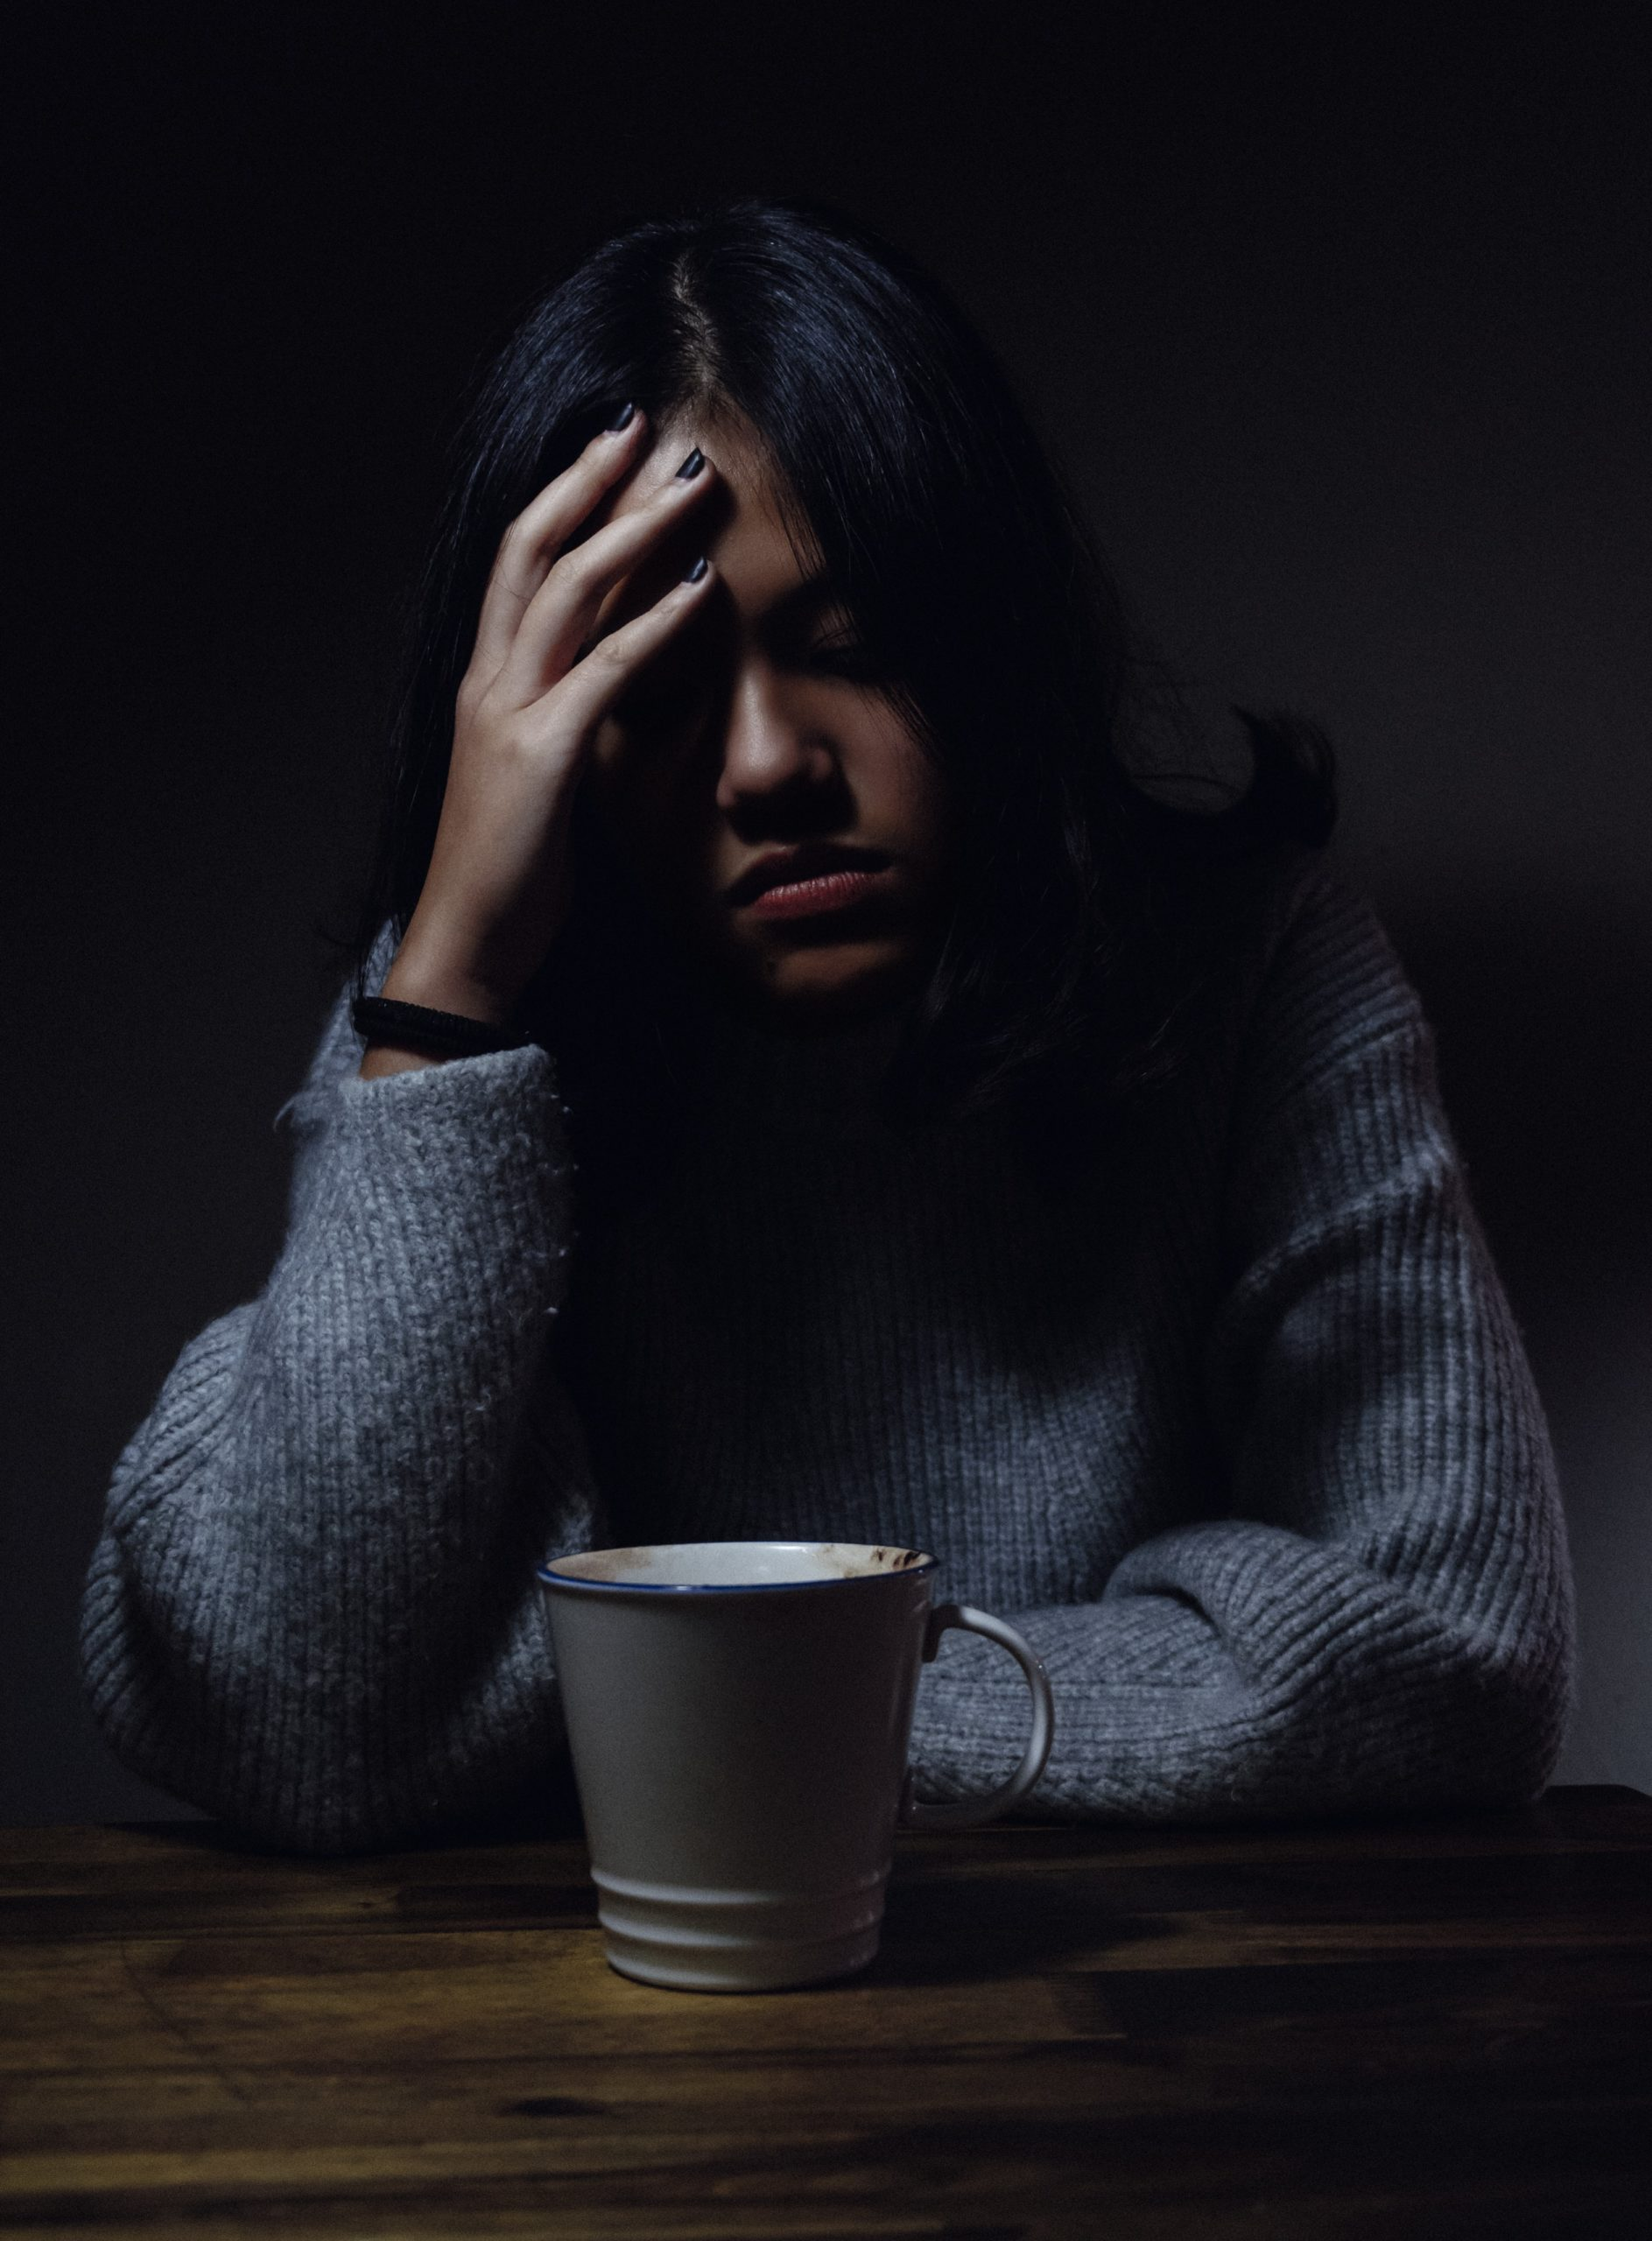 Woman in a gray sweater sitting in a dark room in a depressive state.